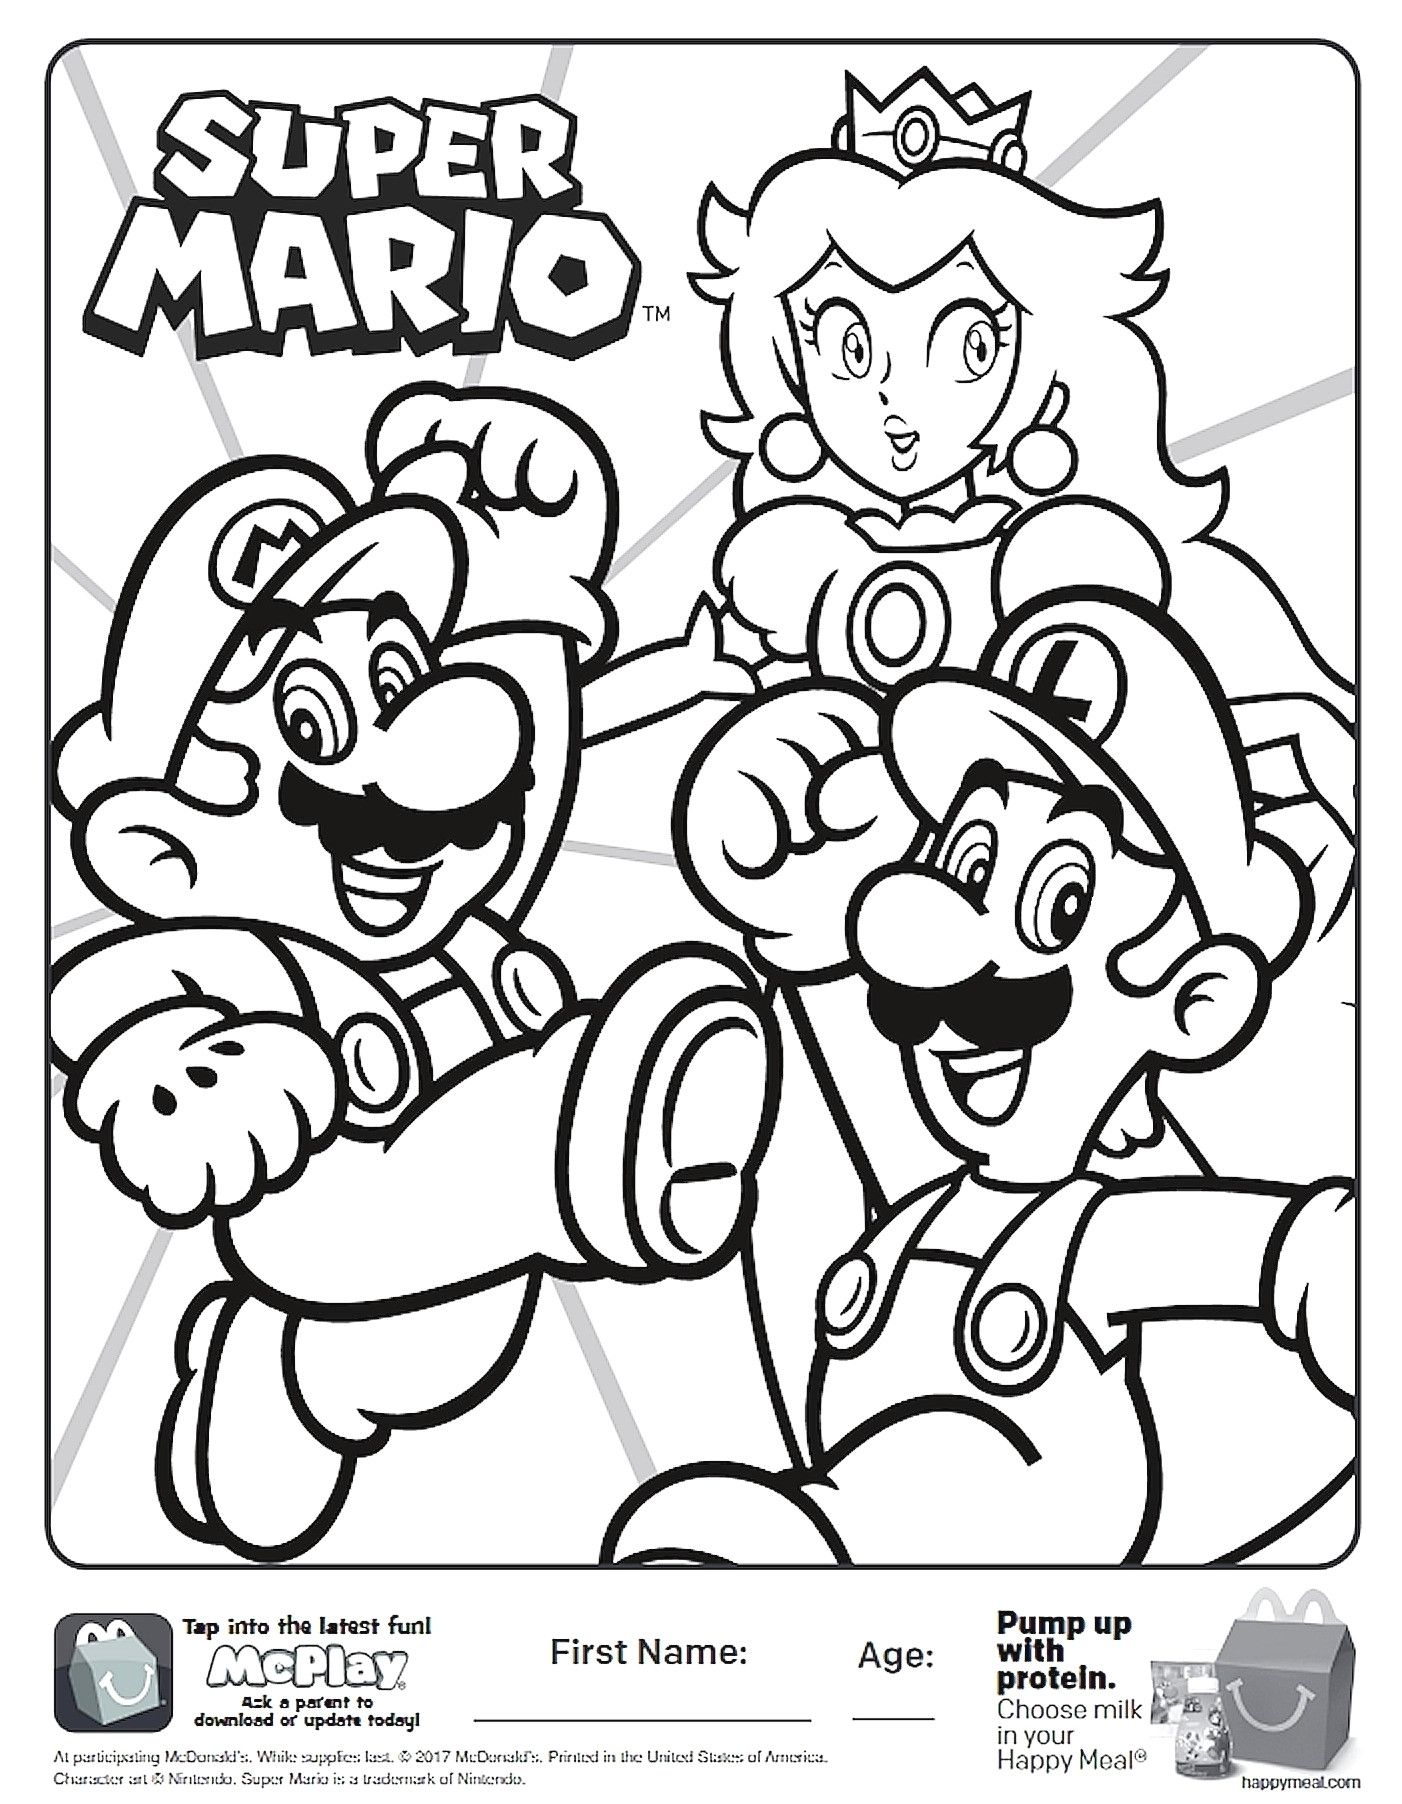 Mario Bros Coloring Pictures Mario Bros Coloring Page Mario Bros Coloring Pictures Super Mario Coloring Pages Valentine Coloring Pages Mario Coloring Pages